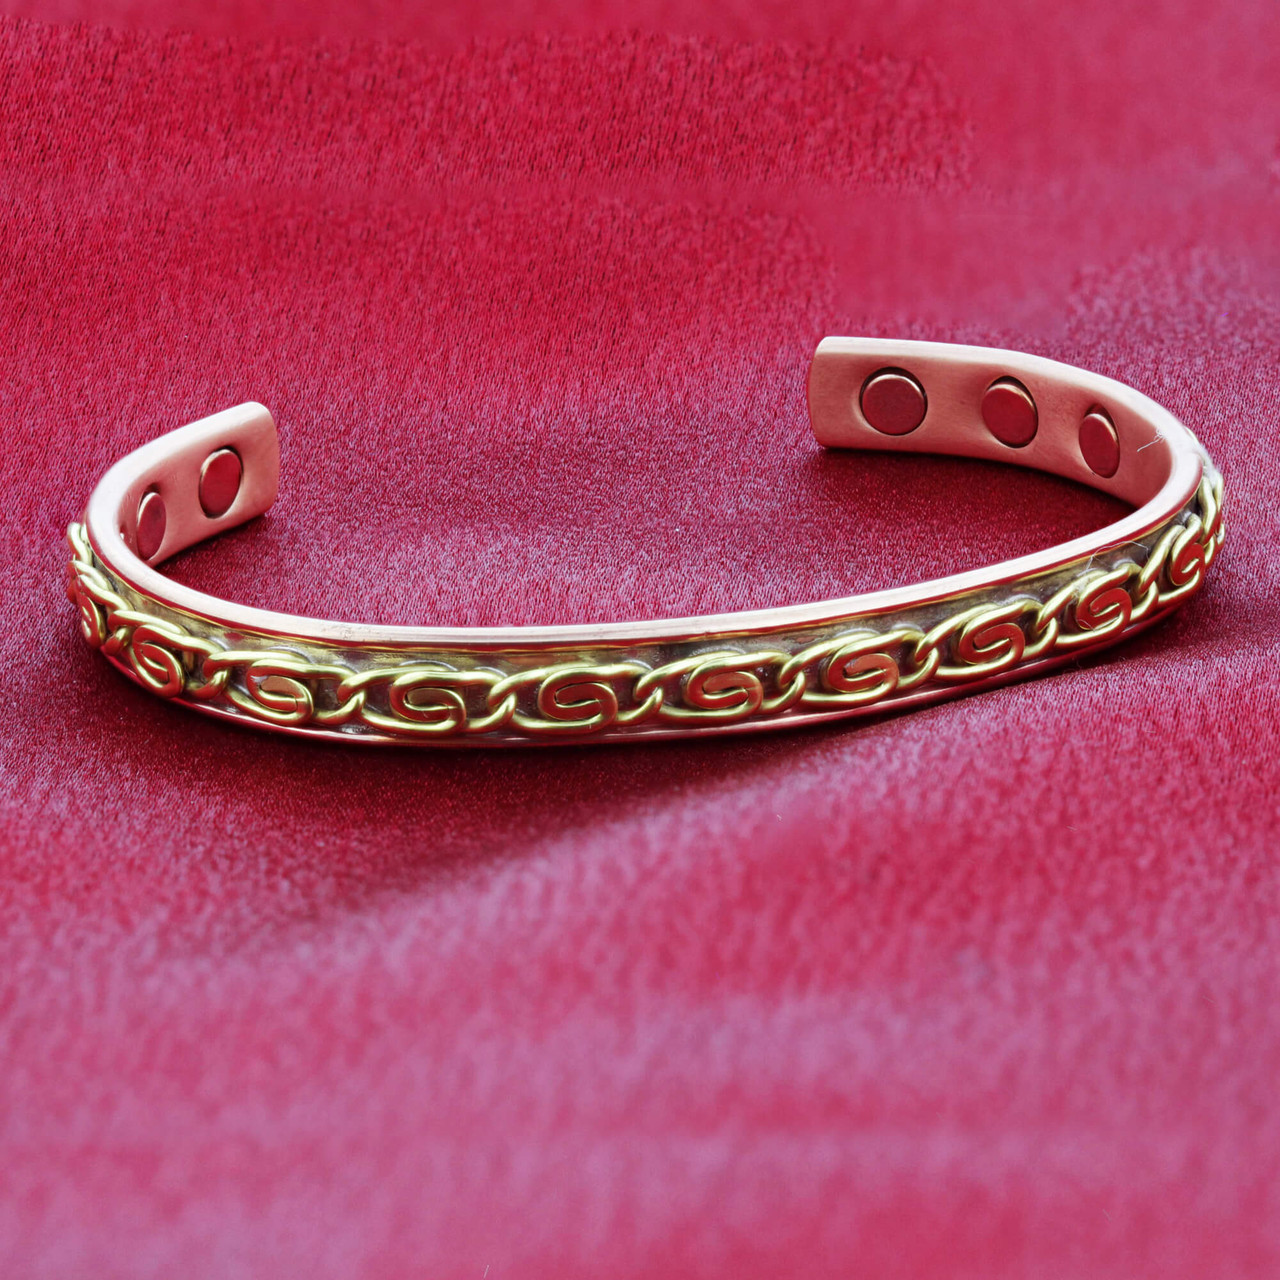 Magnetic Copper Clad Cuff Bracelet with Chain Design on Top